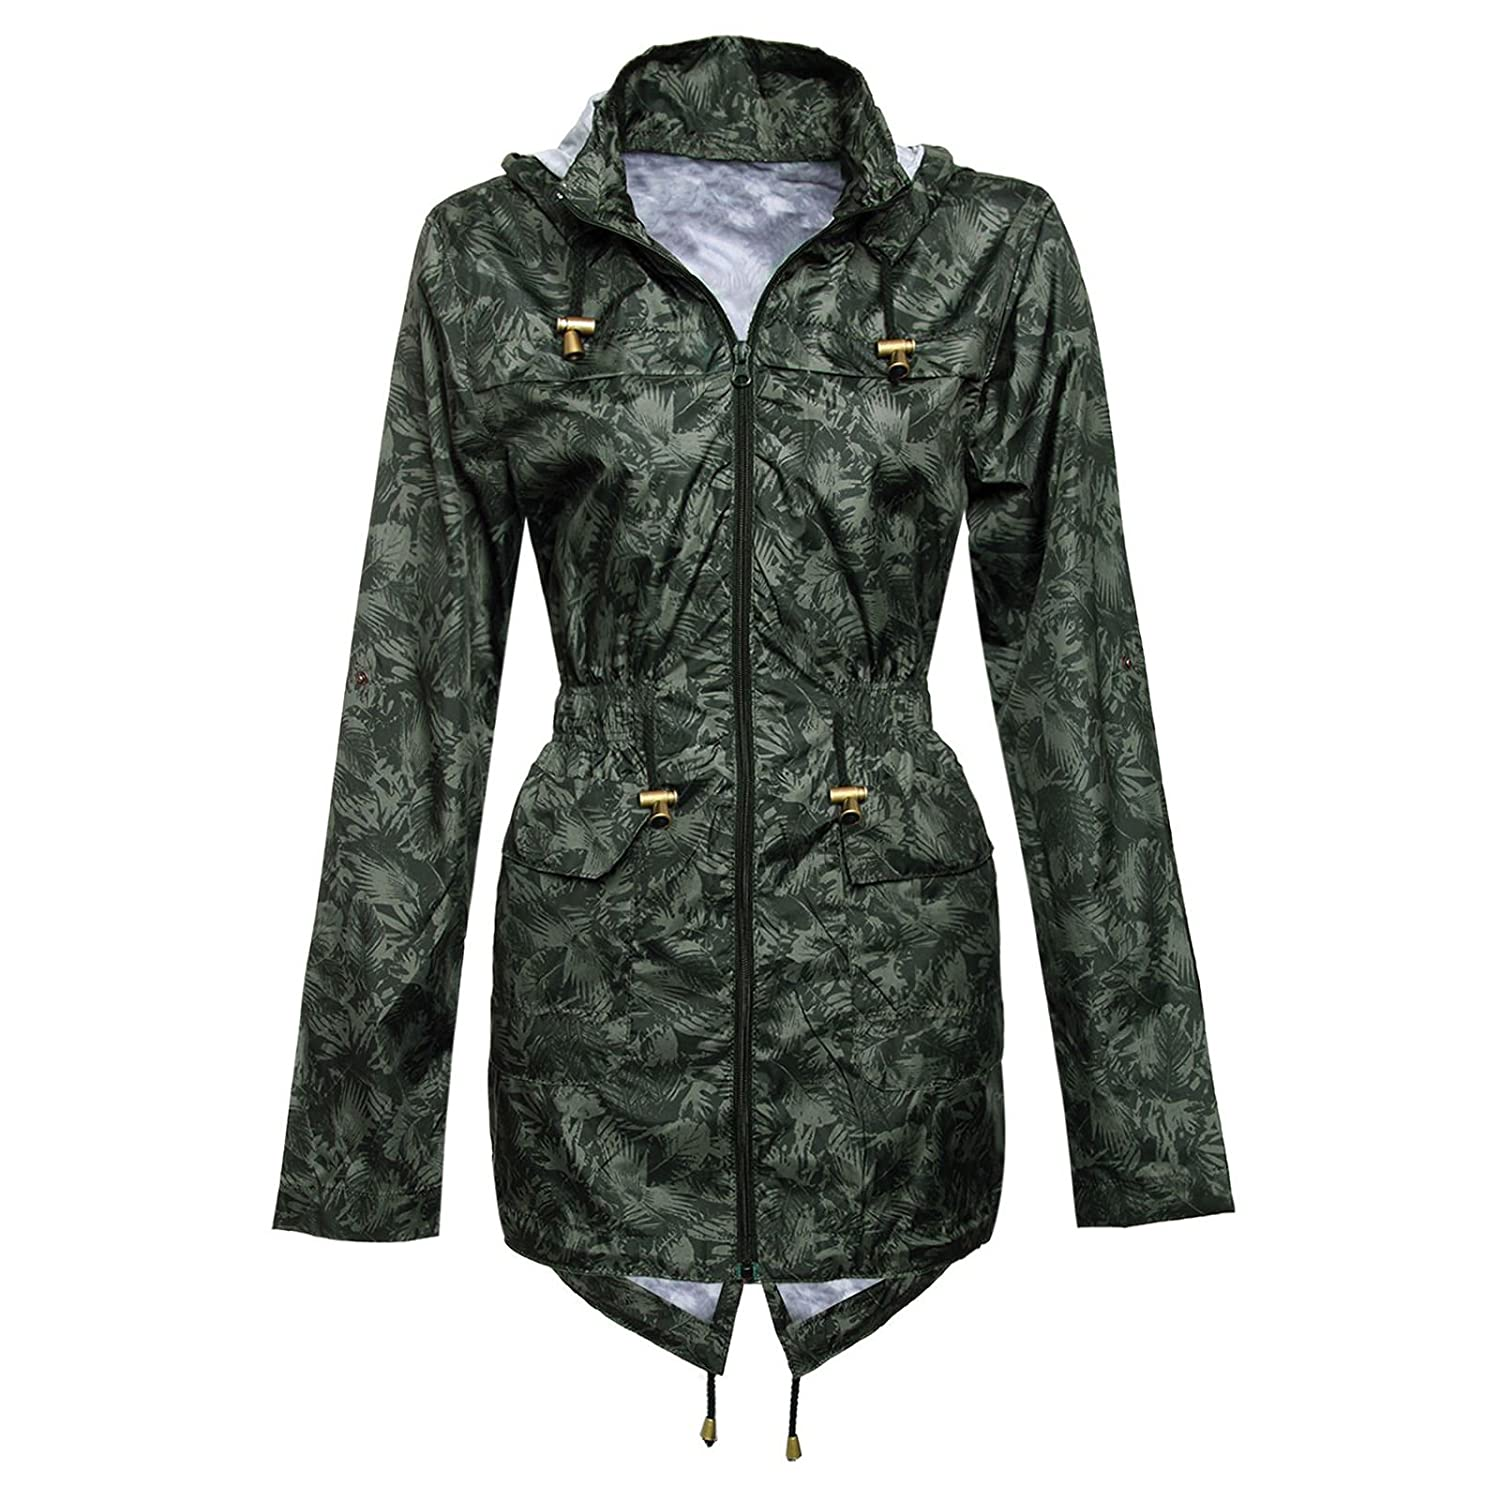 Myshoestore Ladies Women Girls Rain Mac Raincoat Shower Proof Cagoule Parka Hooded Jacket